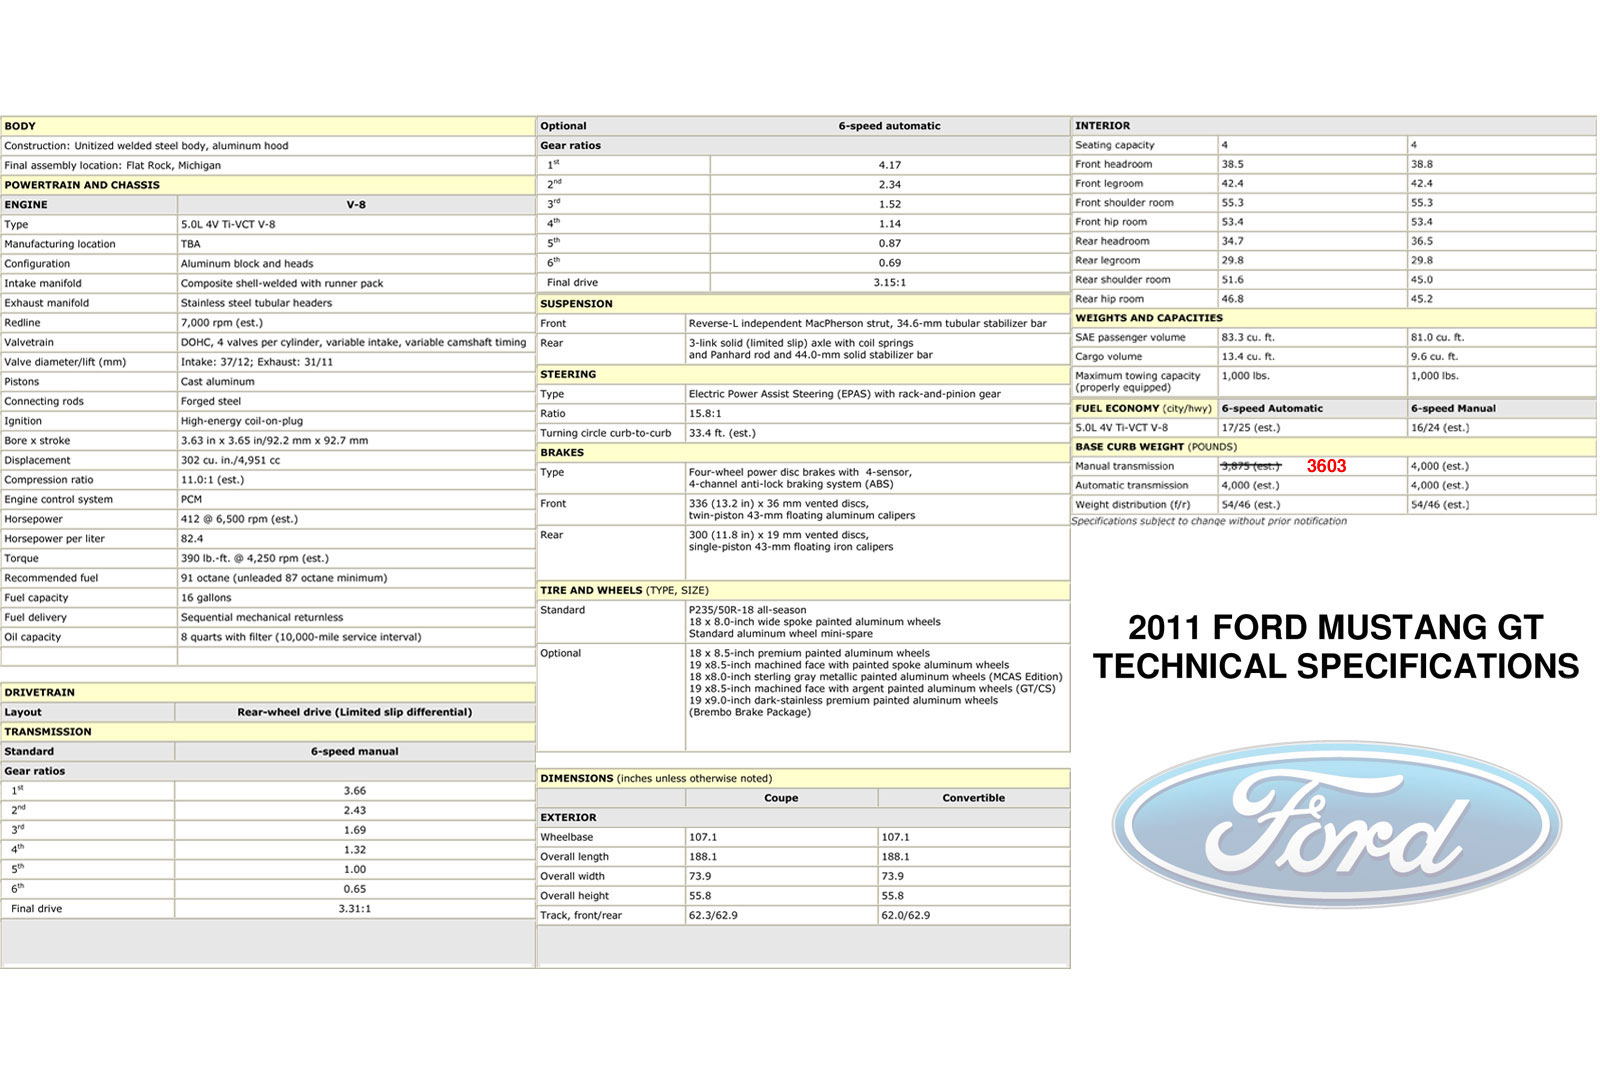 2011 Ford Mustang GT 5.0 Specs